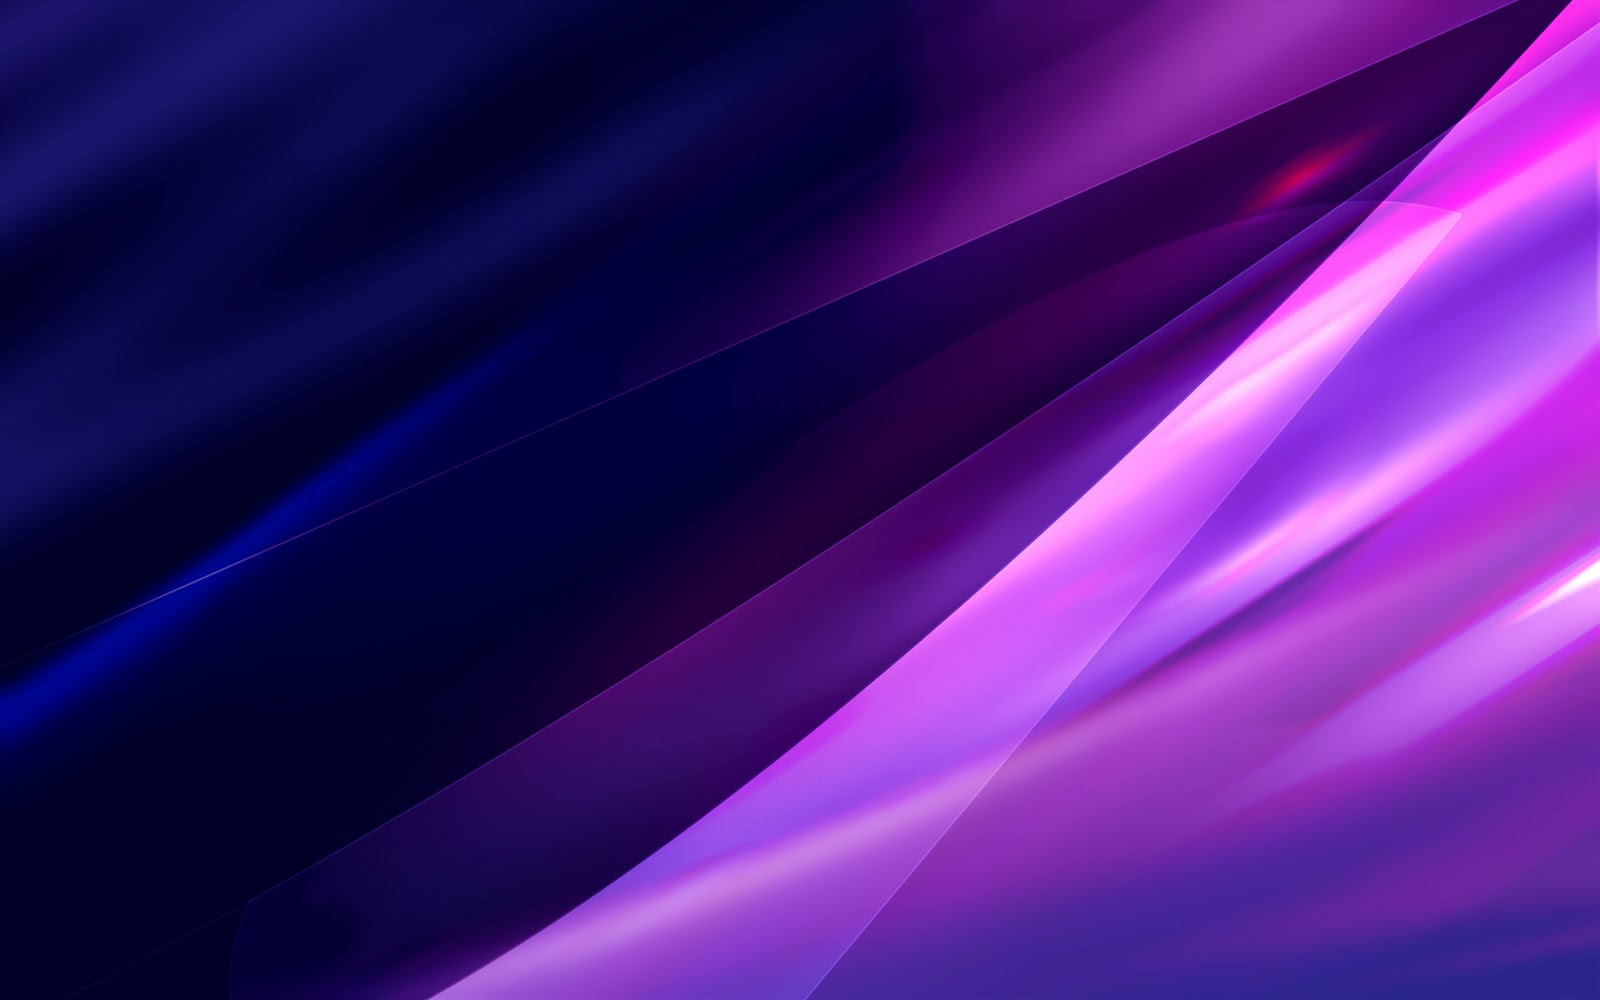 Black And Purple Abstract Widescreen Hd Wallpaper 512: 15 Stunning HD Purple Wallpapers